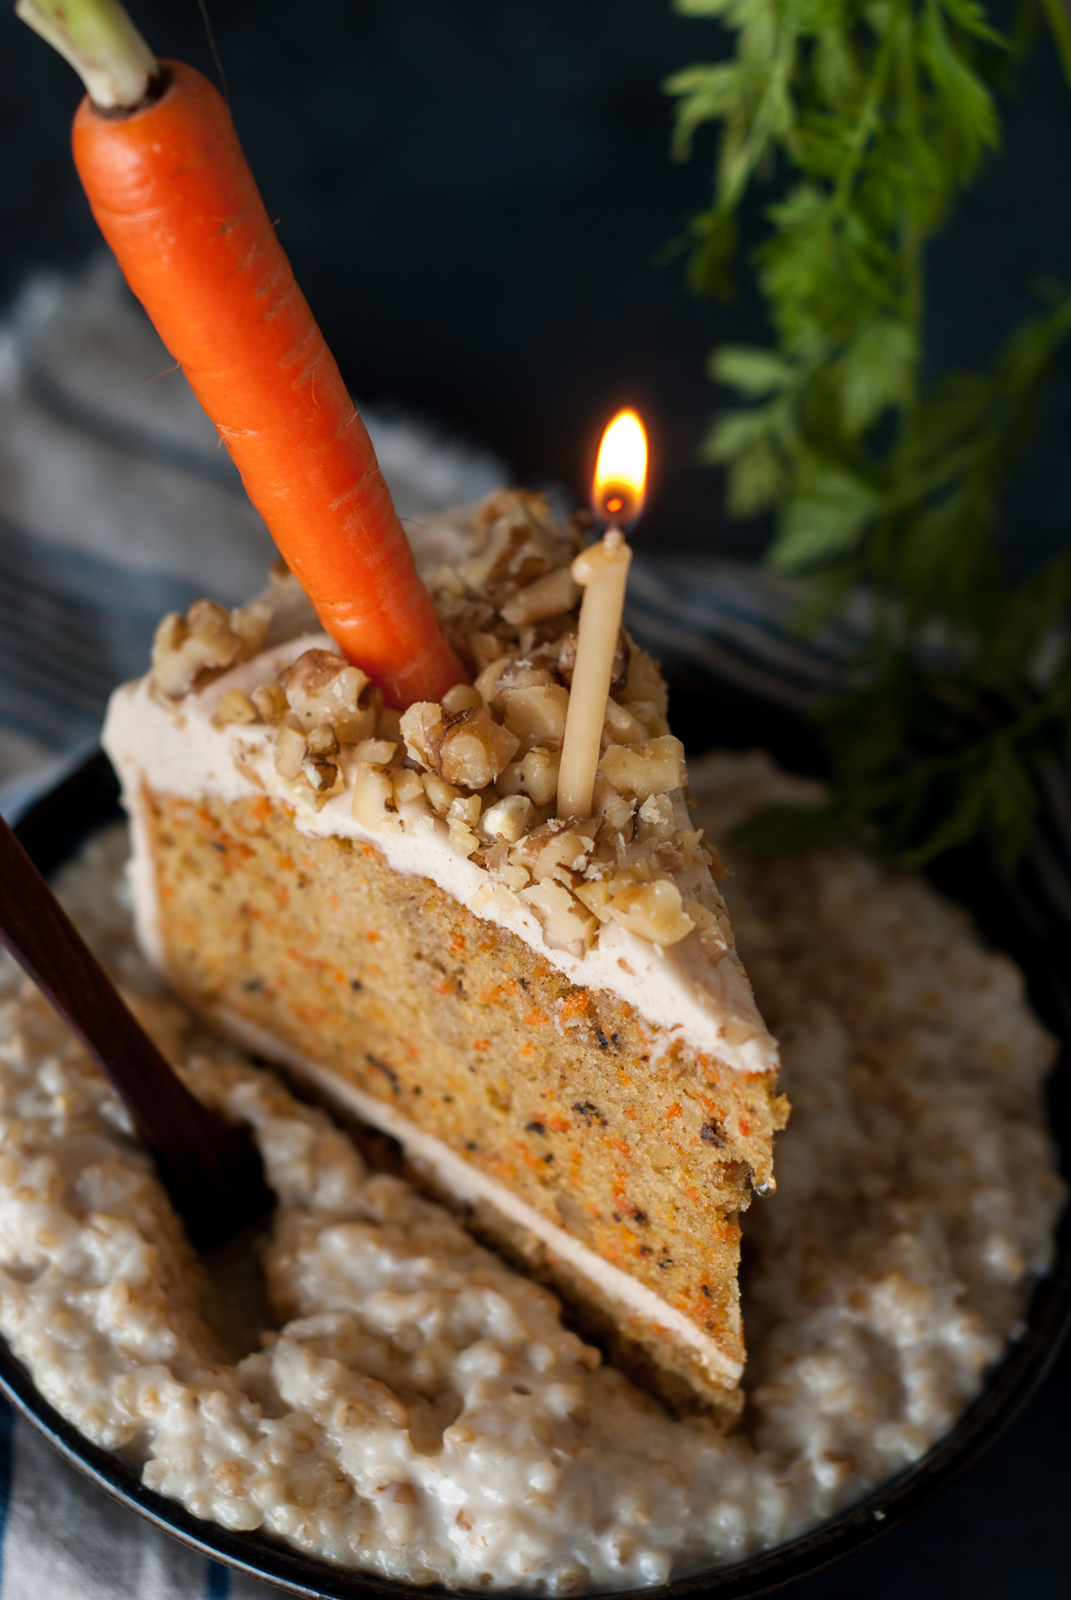 I Love Oatmeal And Carrot Cake Can Totally Improve This Recipe Create The Greatest Birthday Breakfast EverCarrot OatmealMY WAY